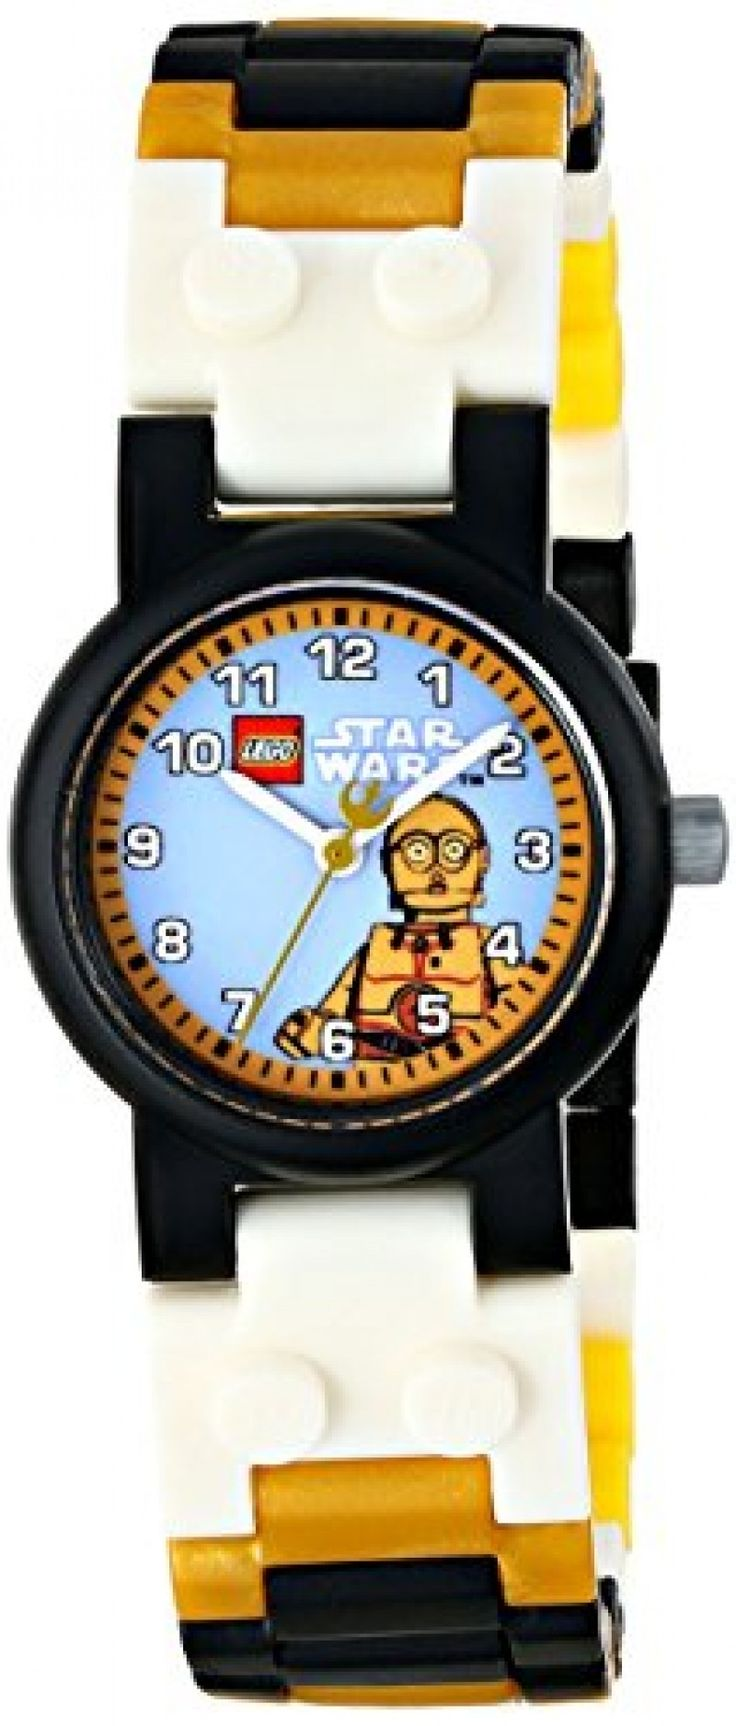 Lego C3PO Kids 9002960 For my other cutie patootie nephew! These watches are so cute!